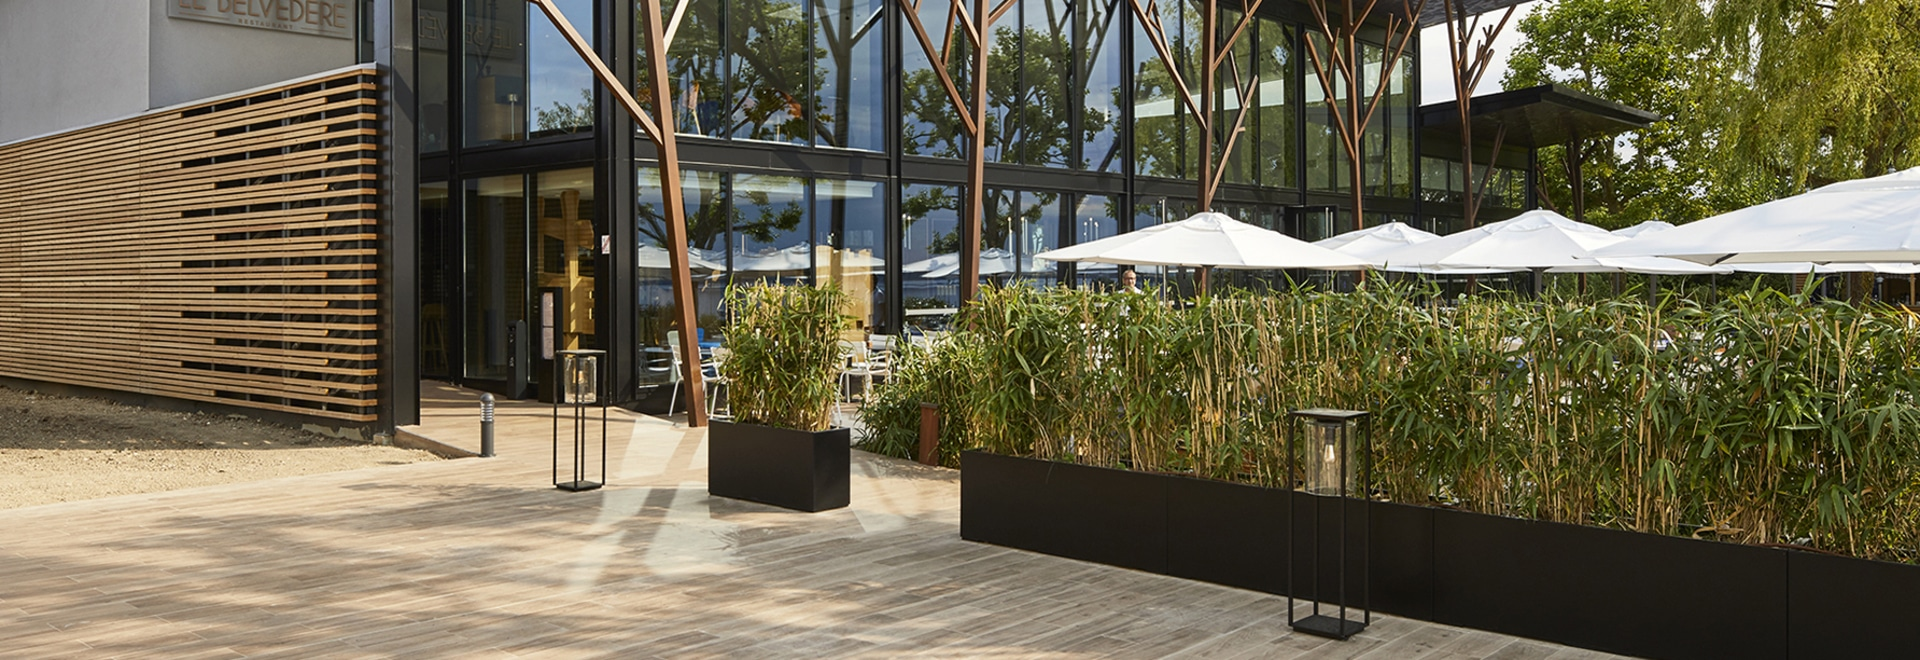 Image'In planters for restaurants